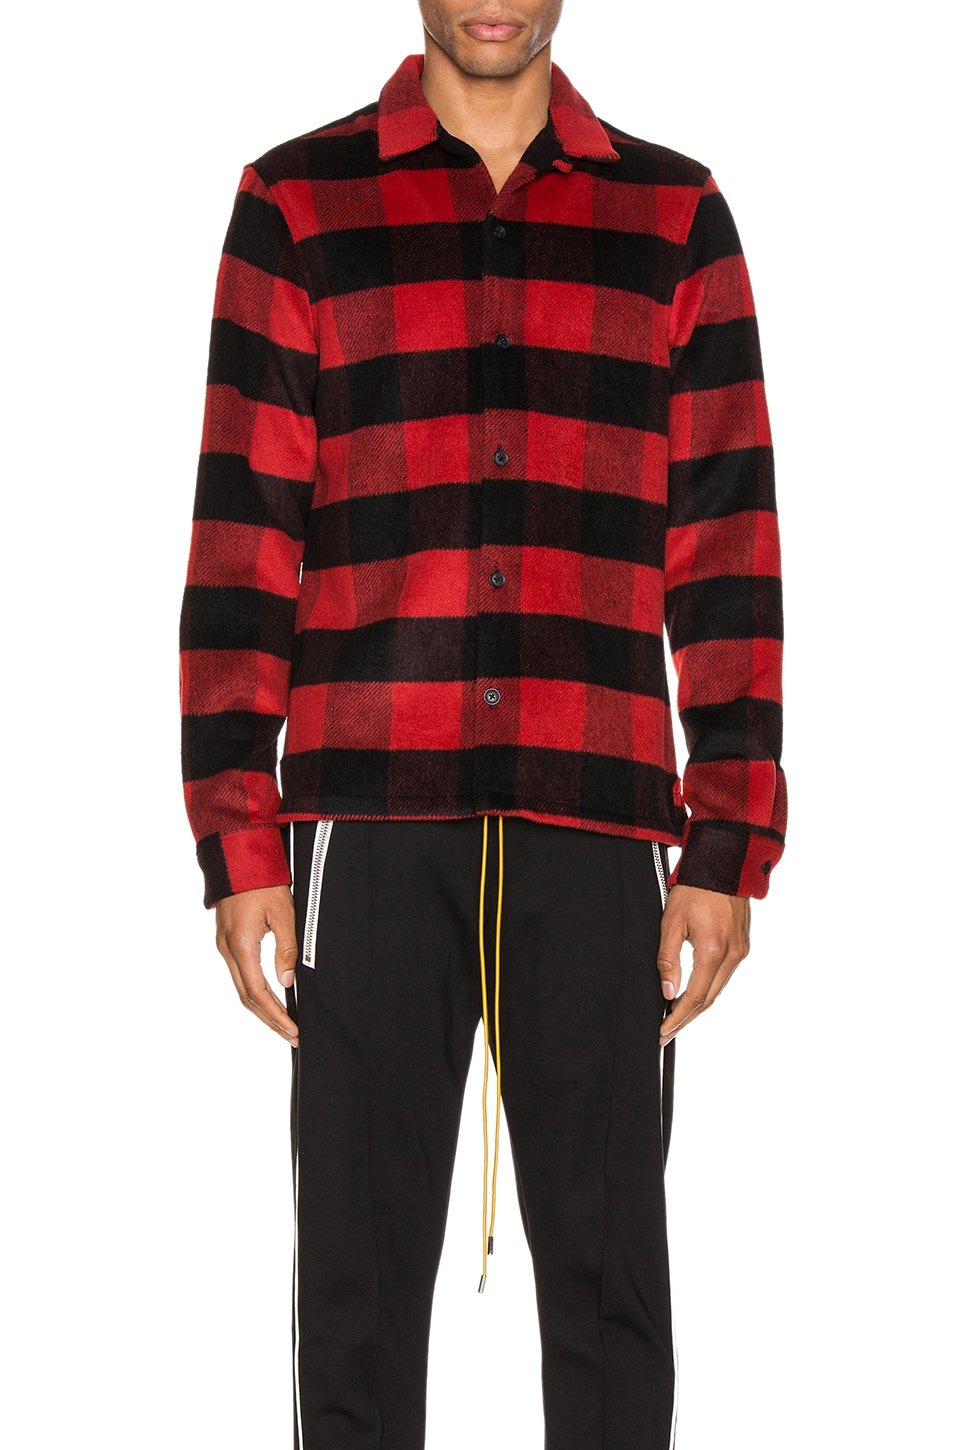 ALLSAINTS Drytown Long Sleeve Shirt in Red & Black